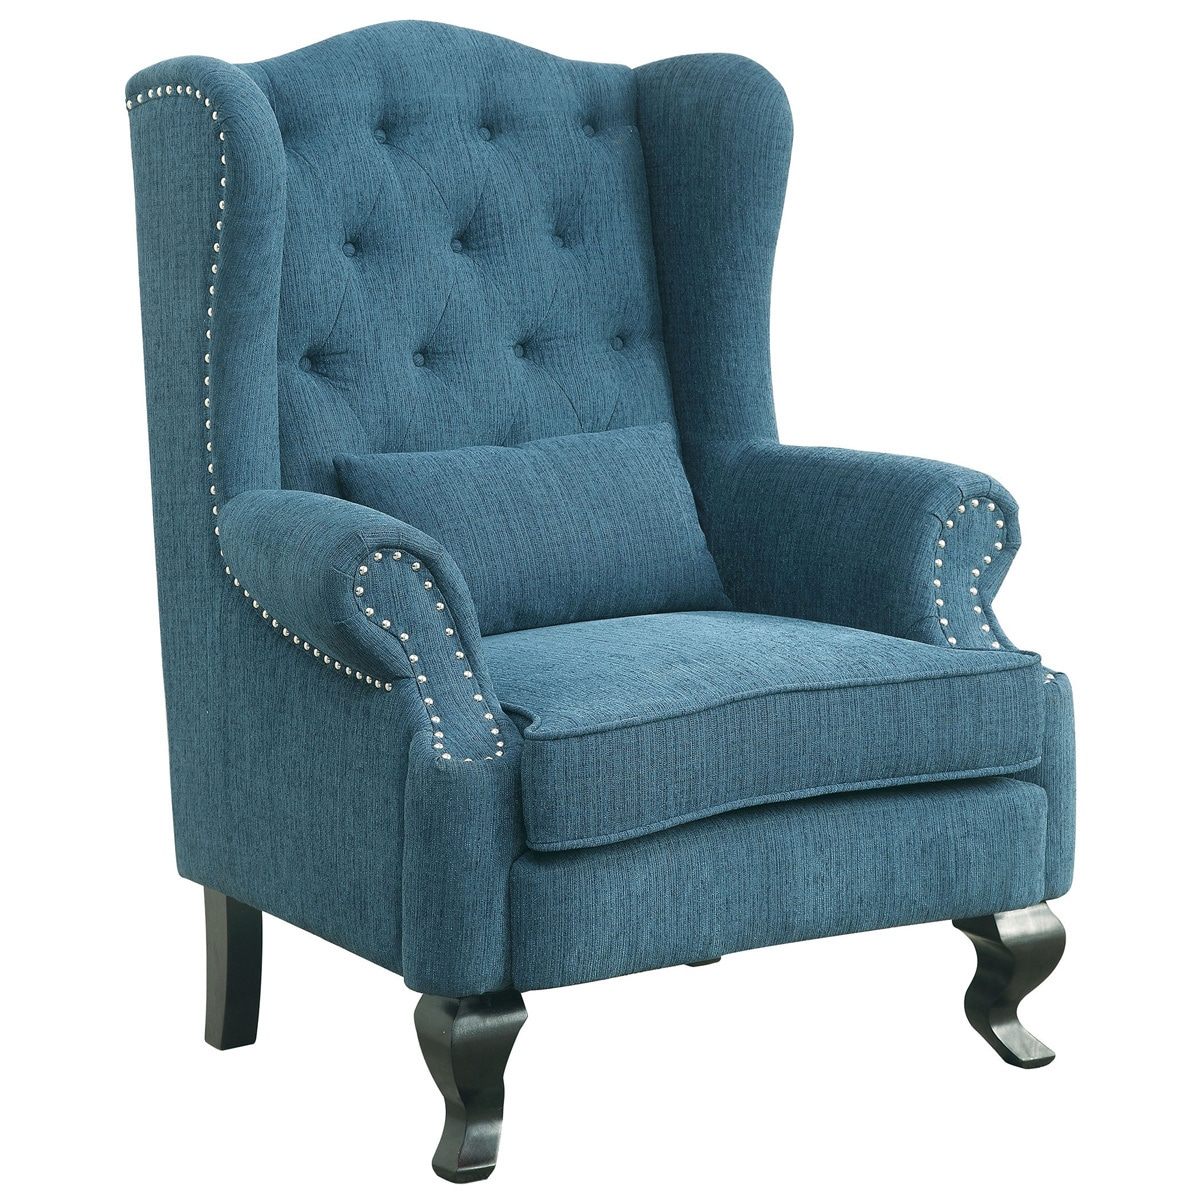 Good Furniture Of America Irving Traditional 2 Piece Tufted Wingback Armchair  And Ottoman Set   Free Shipping Today   Overstock.com   18412743 Great Ideas